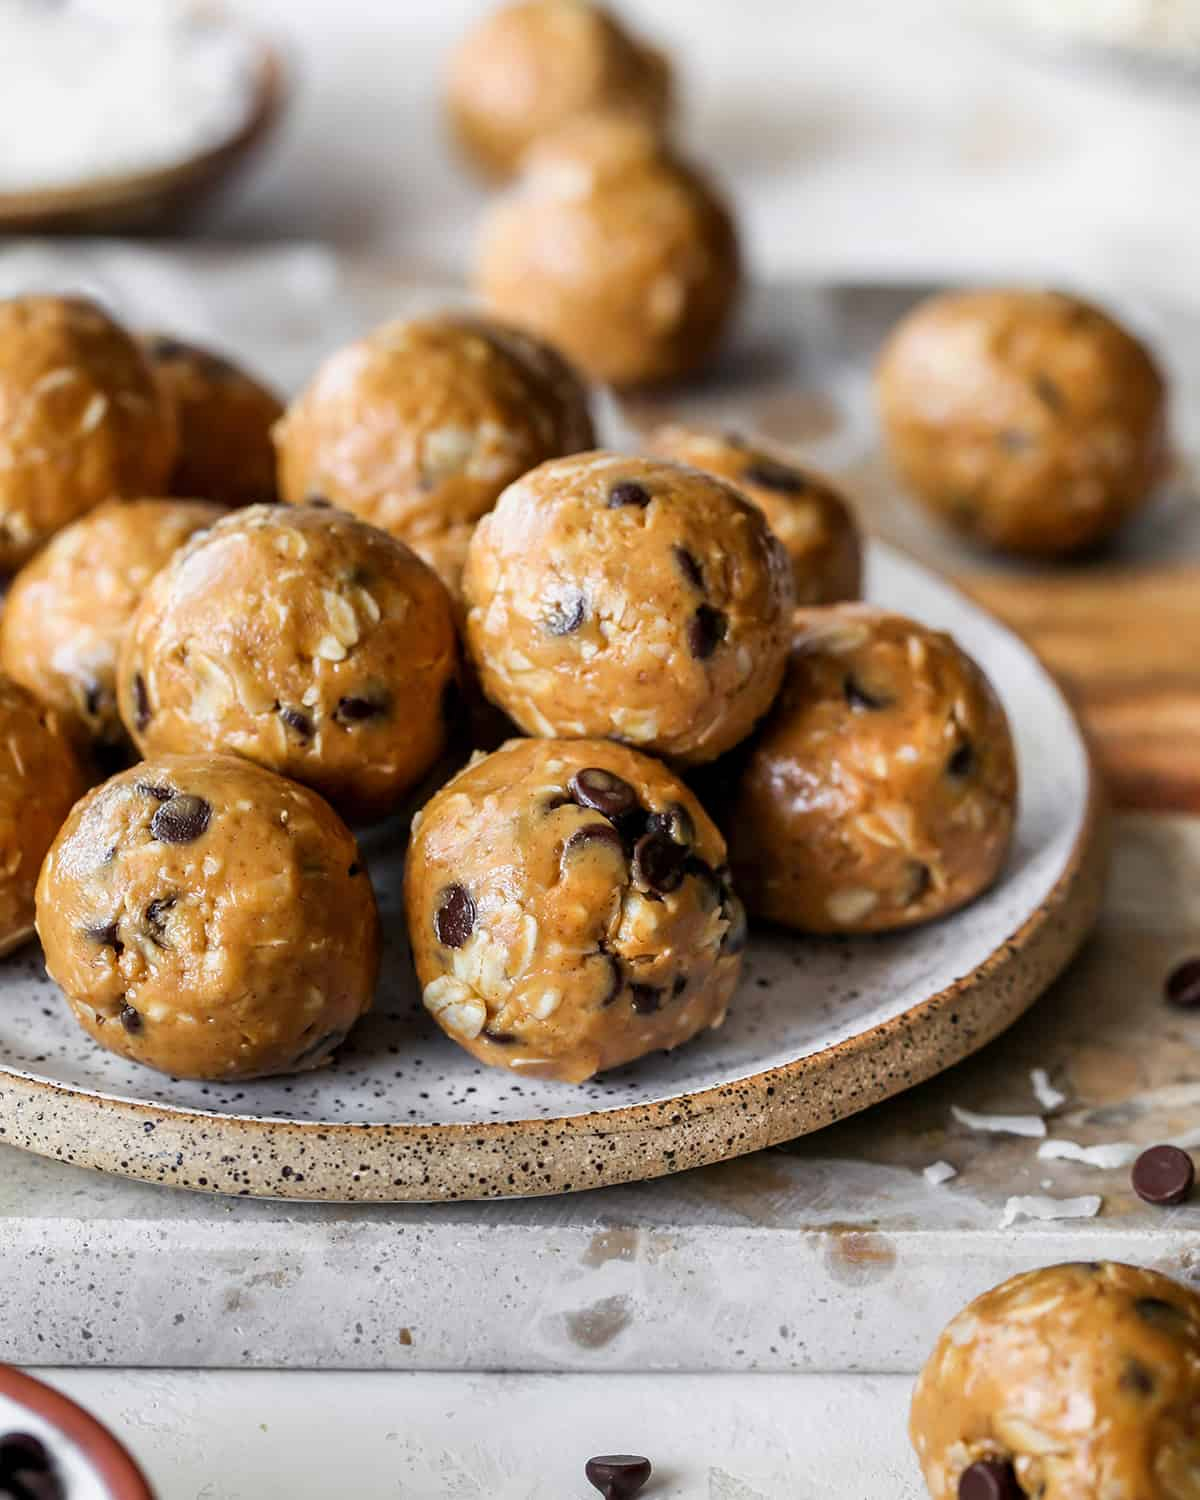 10 Peanut Butter Protein Balls (Energy Balls) stacked on a plate